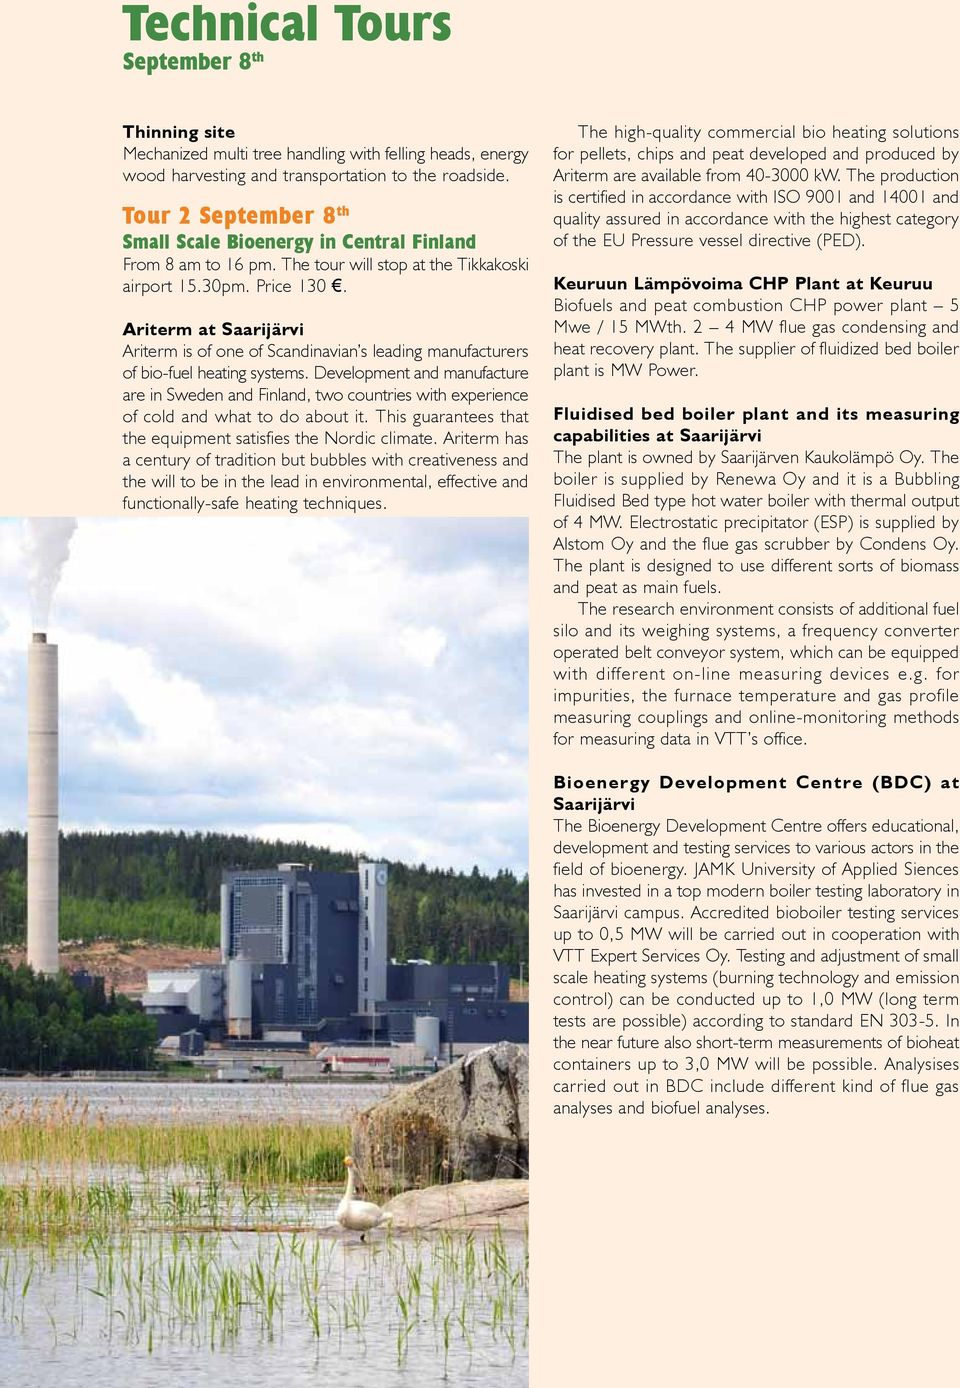 Ariterm at Saarijärvi Ariterm is of one of Scandinavian s leading manufacturers of bio-fuel heating systems.